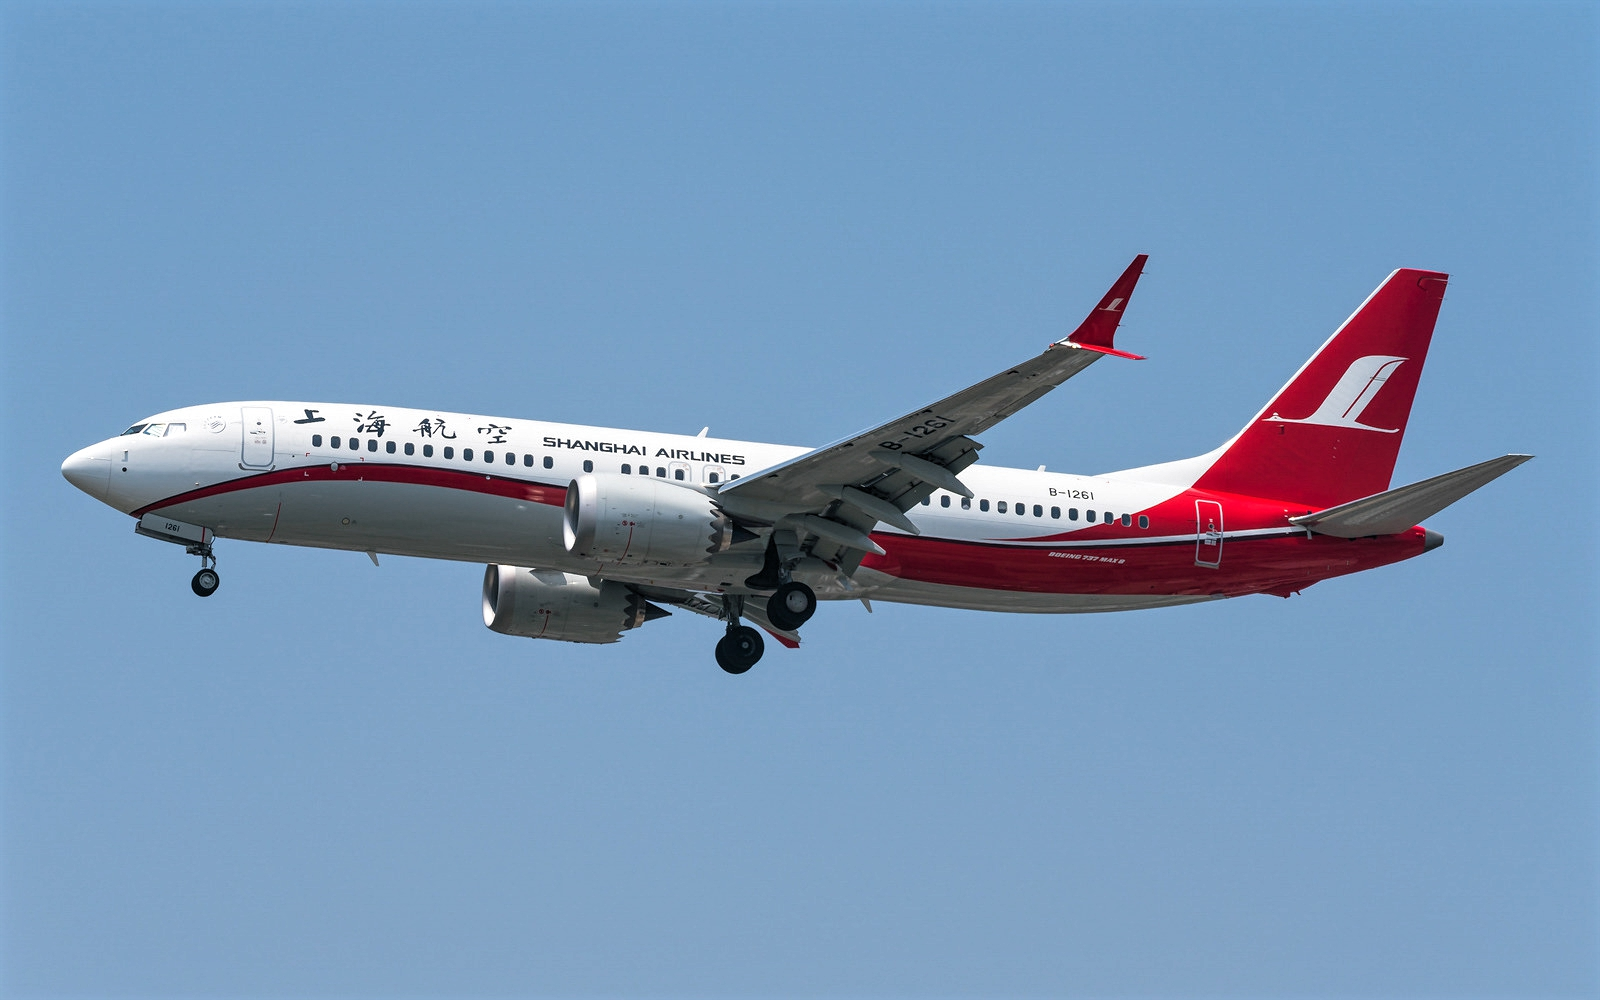 Boeing 737 MAX 8 of Shanghai Airlines Approaching Landing